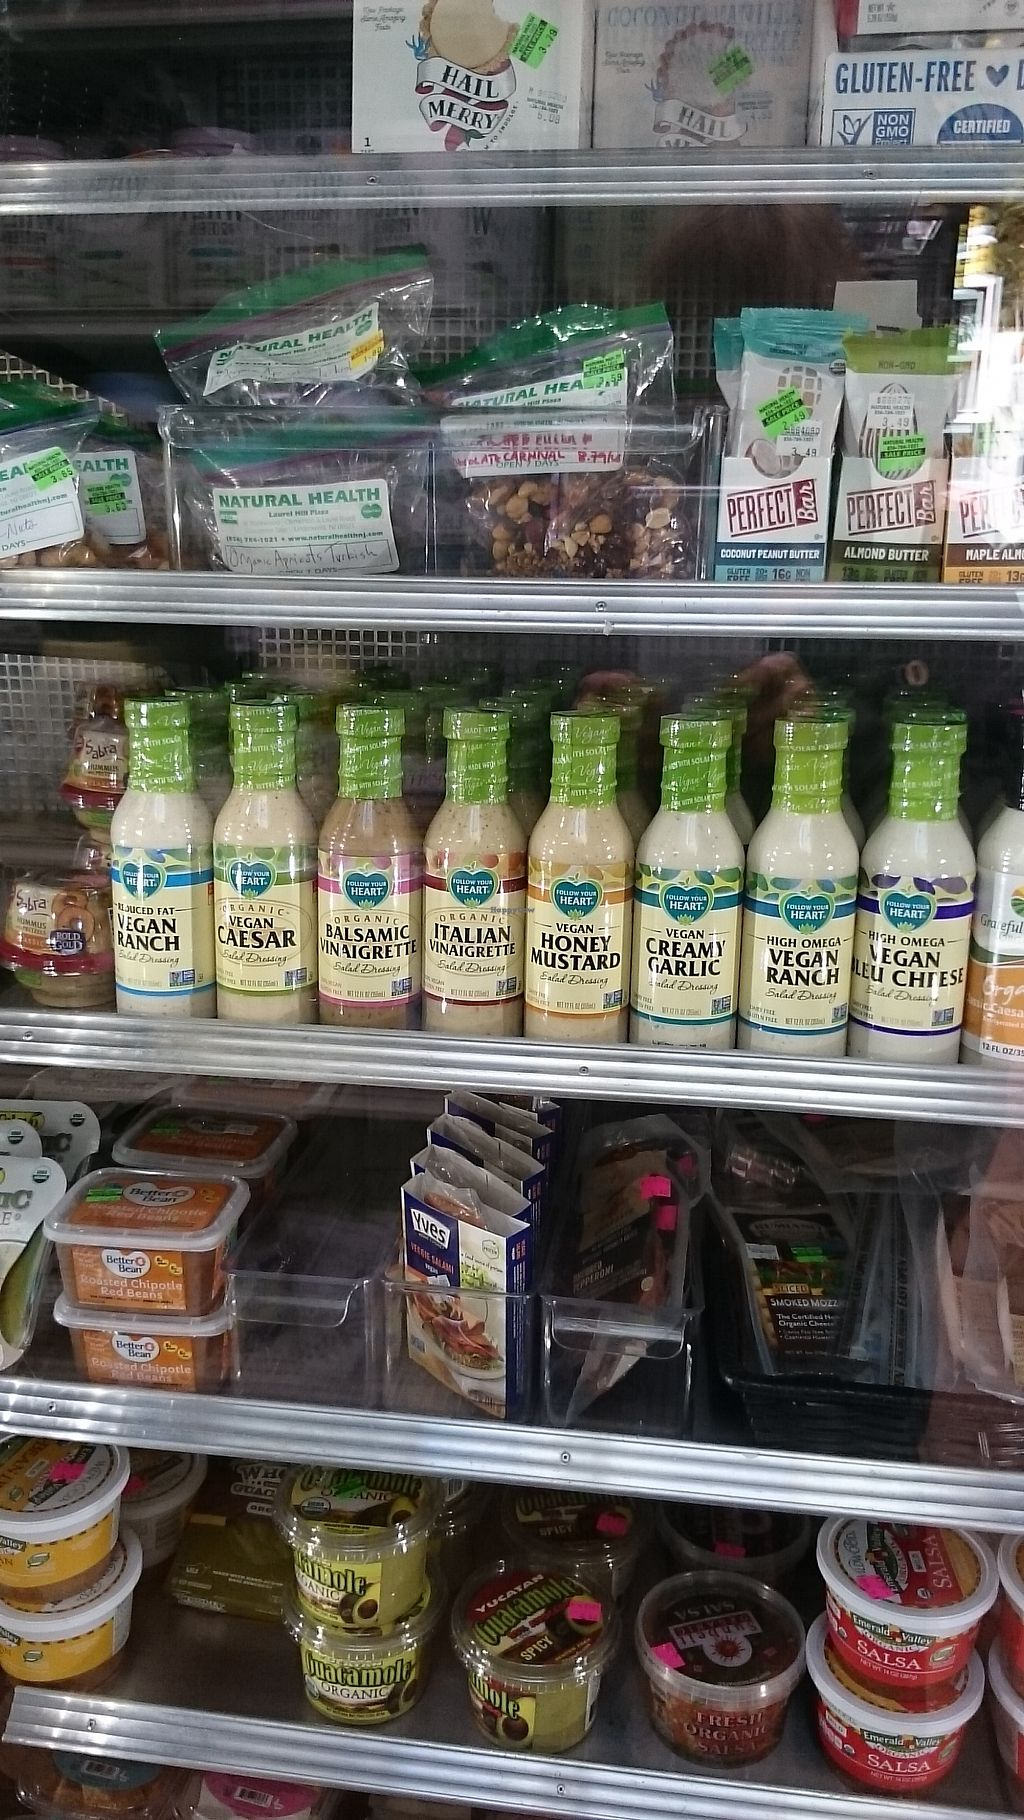 """Photo of Natural Health  by <a href=""""/members/profile/ZoraySpielvogel"""">ZoraySpielvogel</a> <br/>Refrigerator section.  <br/> September 10, 2017  - <a href='/contact/abuse/image/17602/302994'>Report</a>"""